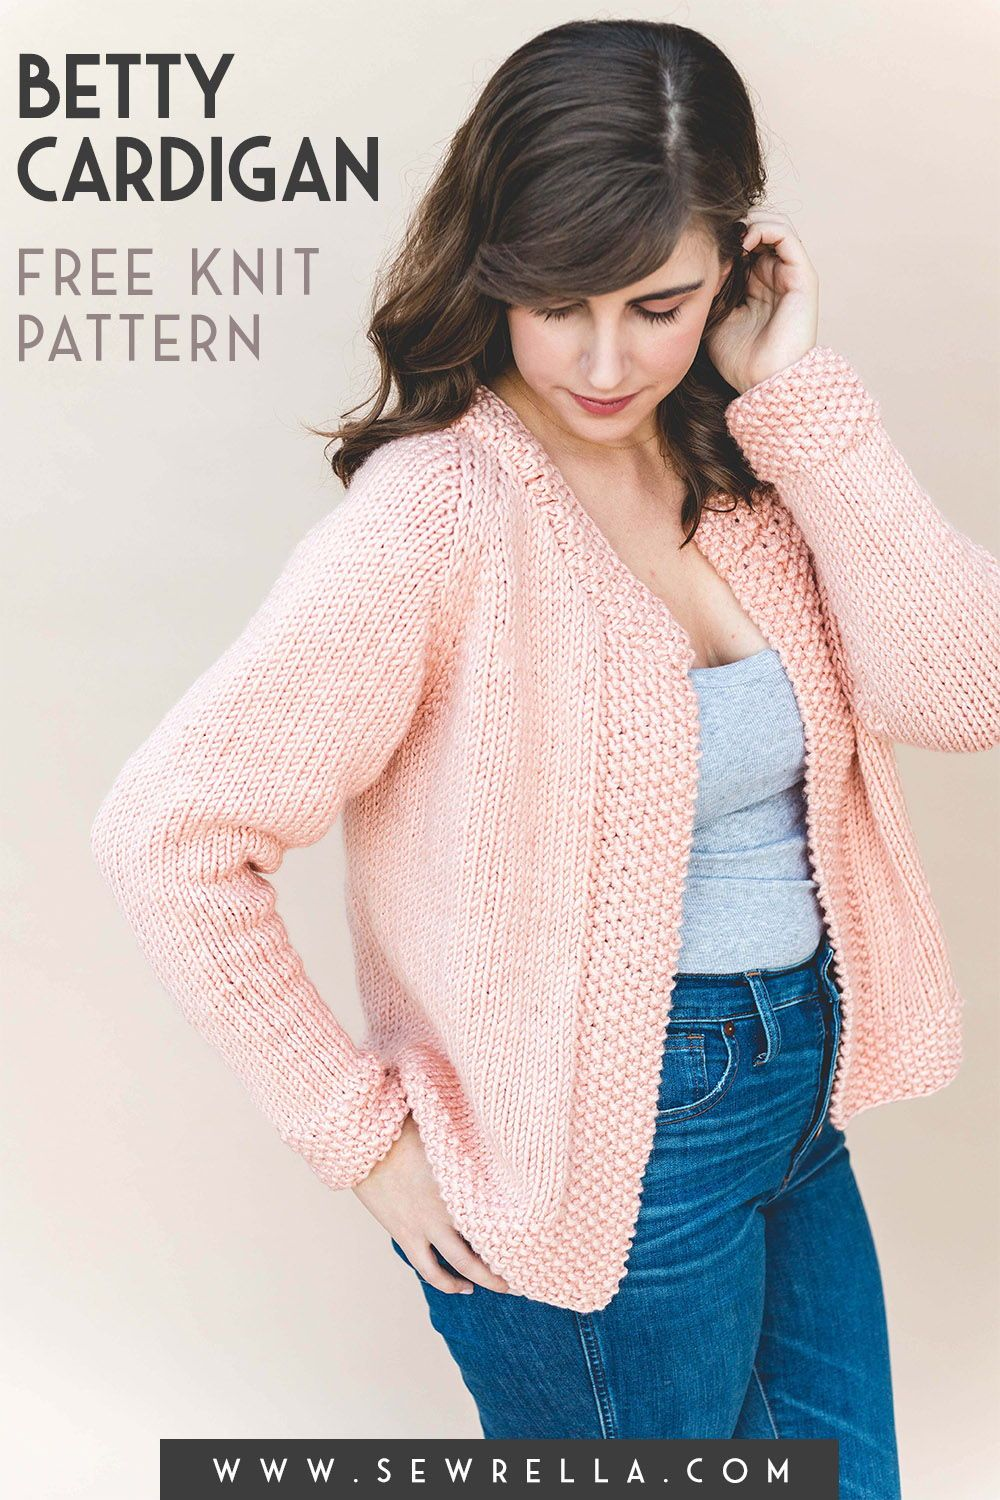 Knit Betty Cardigan in 2020 | Ladies cardigan knitting ...